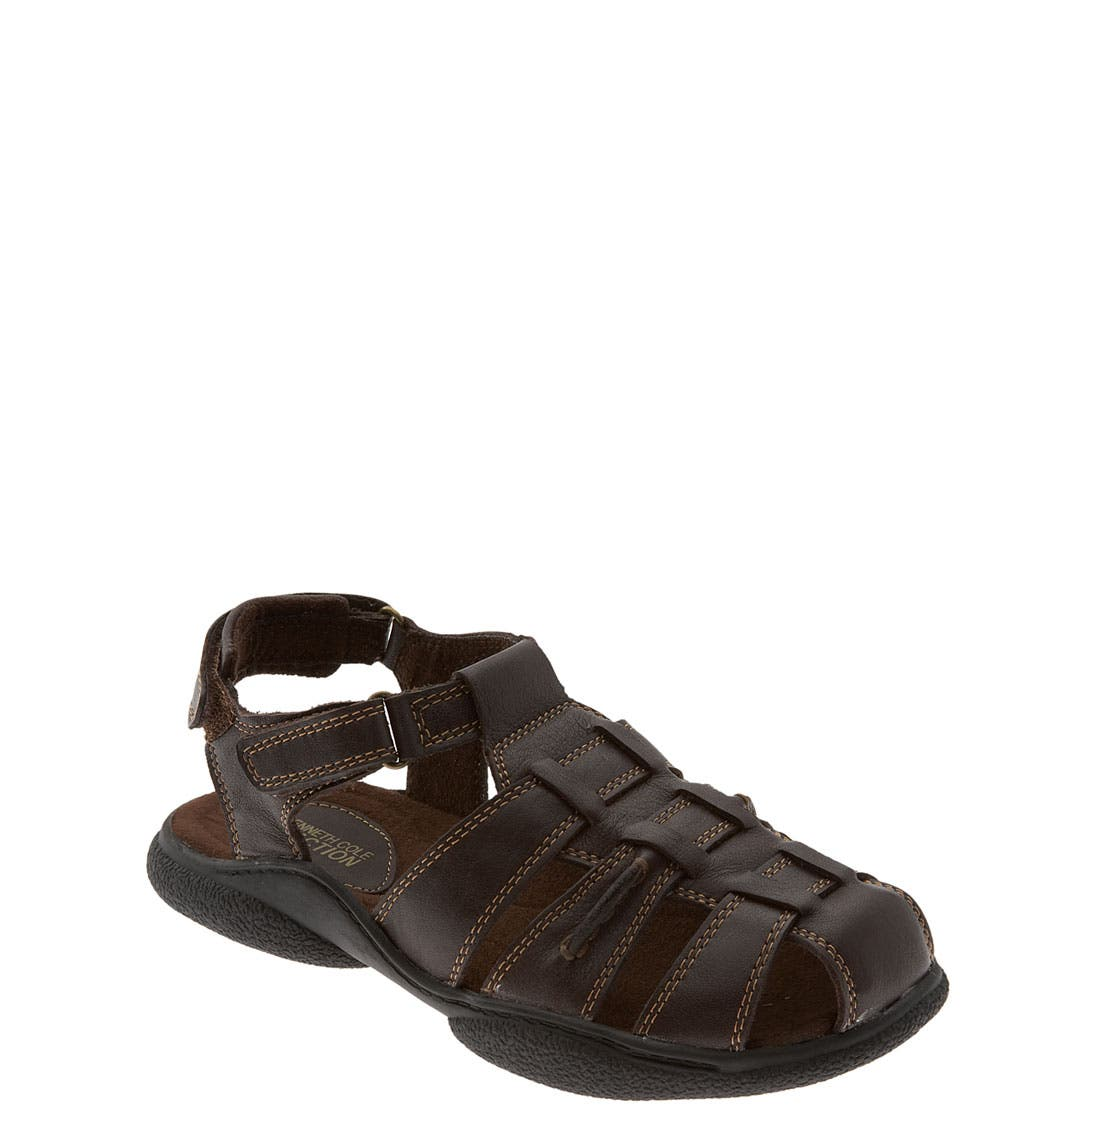 Alternate Image 1 Selected - Kenneth Cole Reaction 'Make a Wes' Sandal (Little Kid & Big Kid)